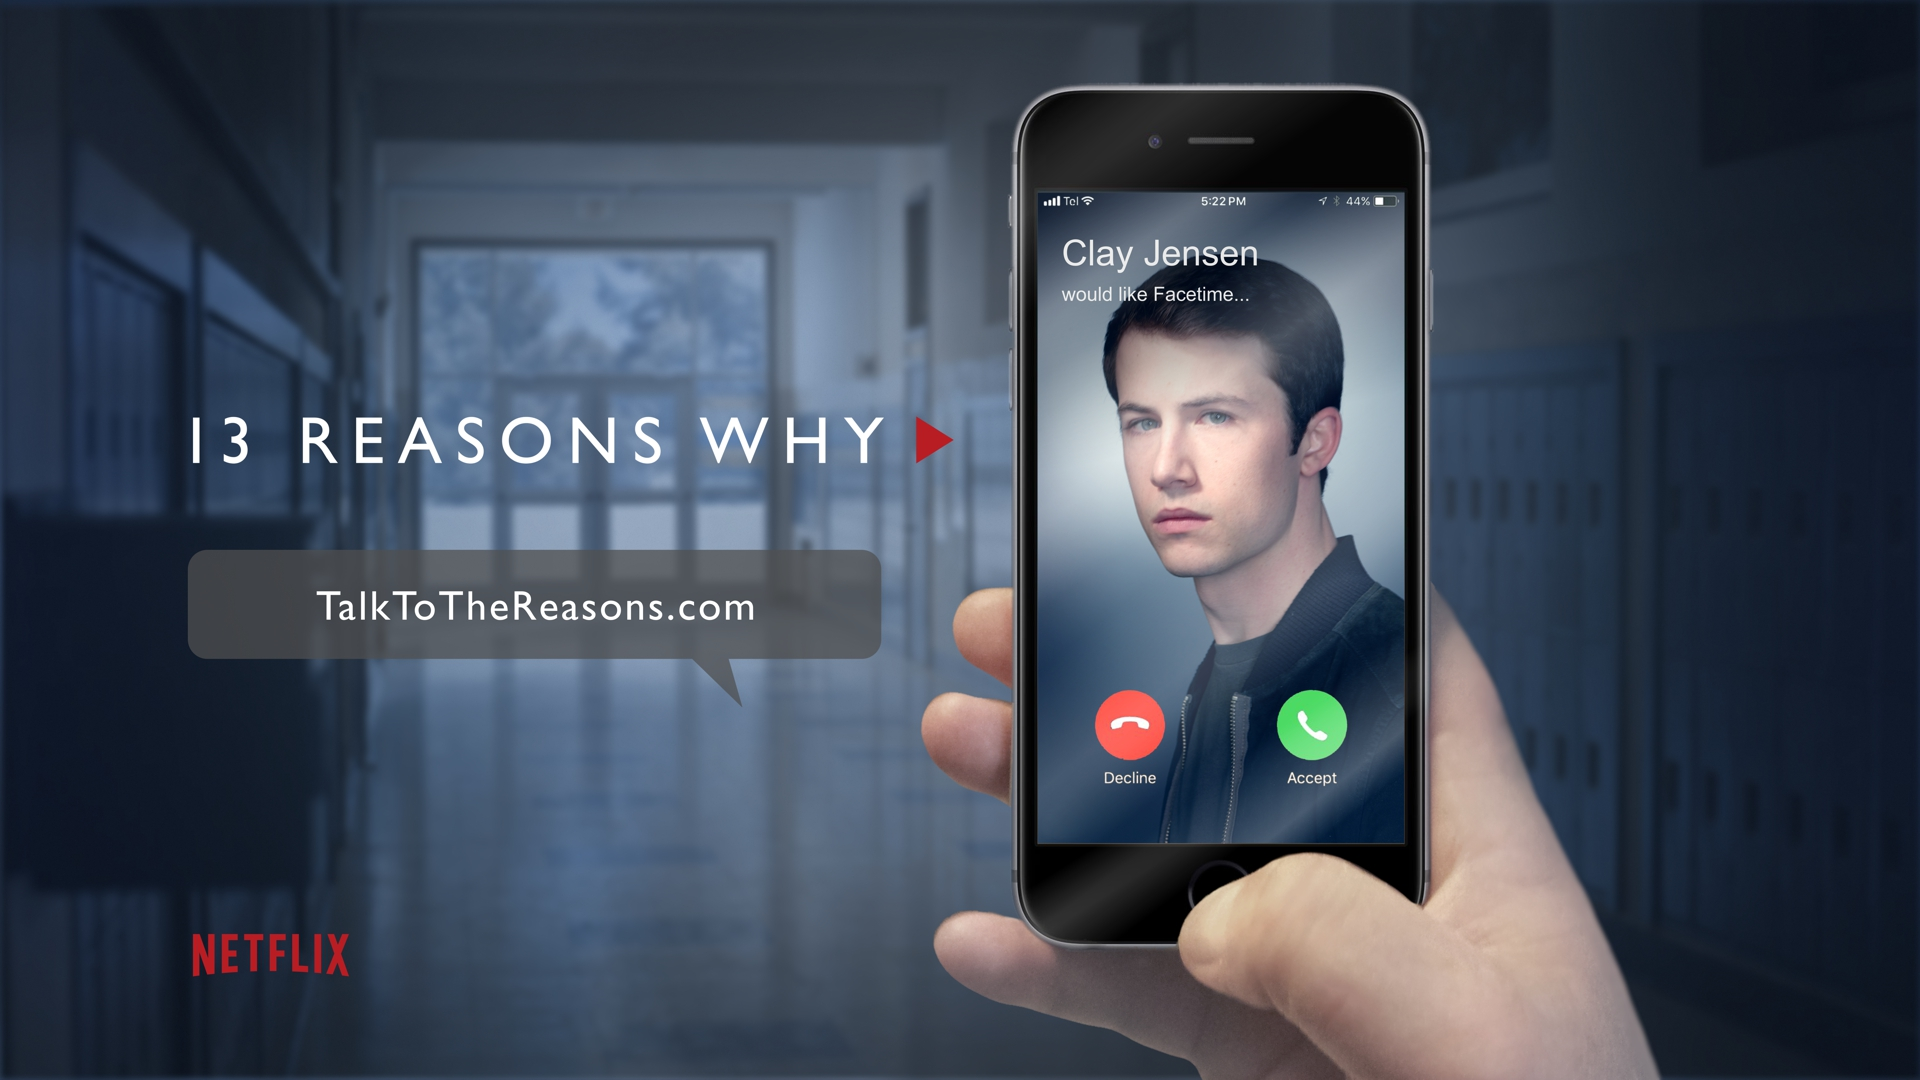 13ReasonsWhy.EmmySubmission.Poster.Image.jpg